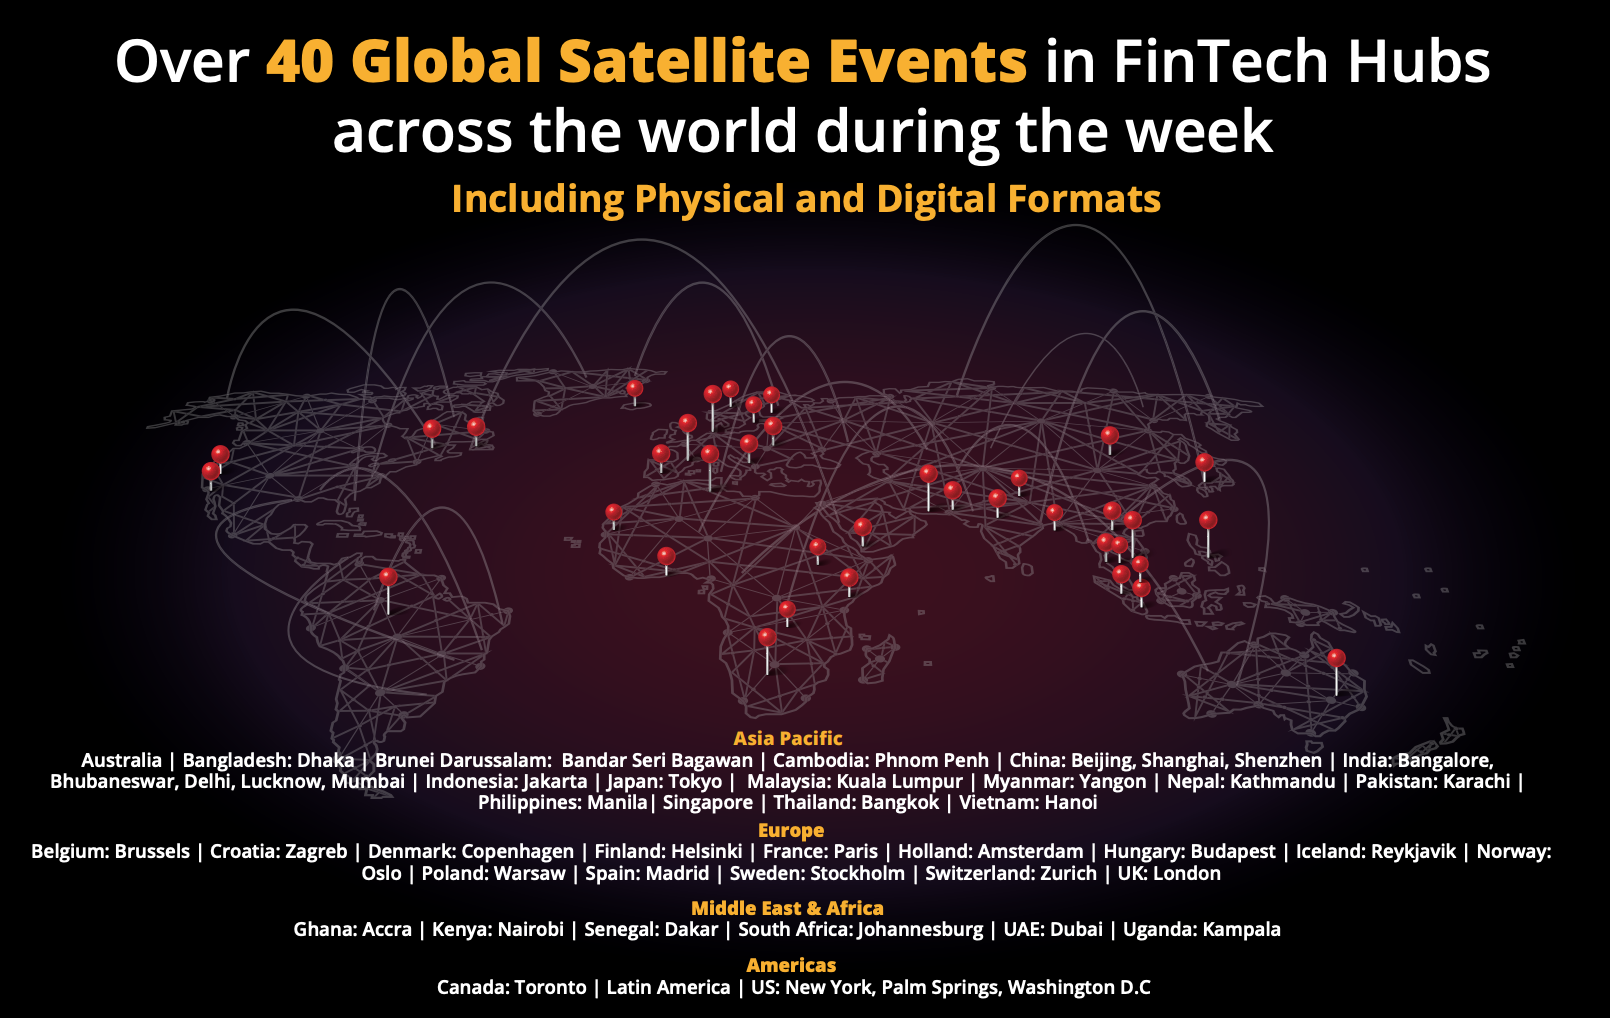 Singapore Fintech Festival 2020 Global Satellite Events, Illustration via Fintechfestival.sg